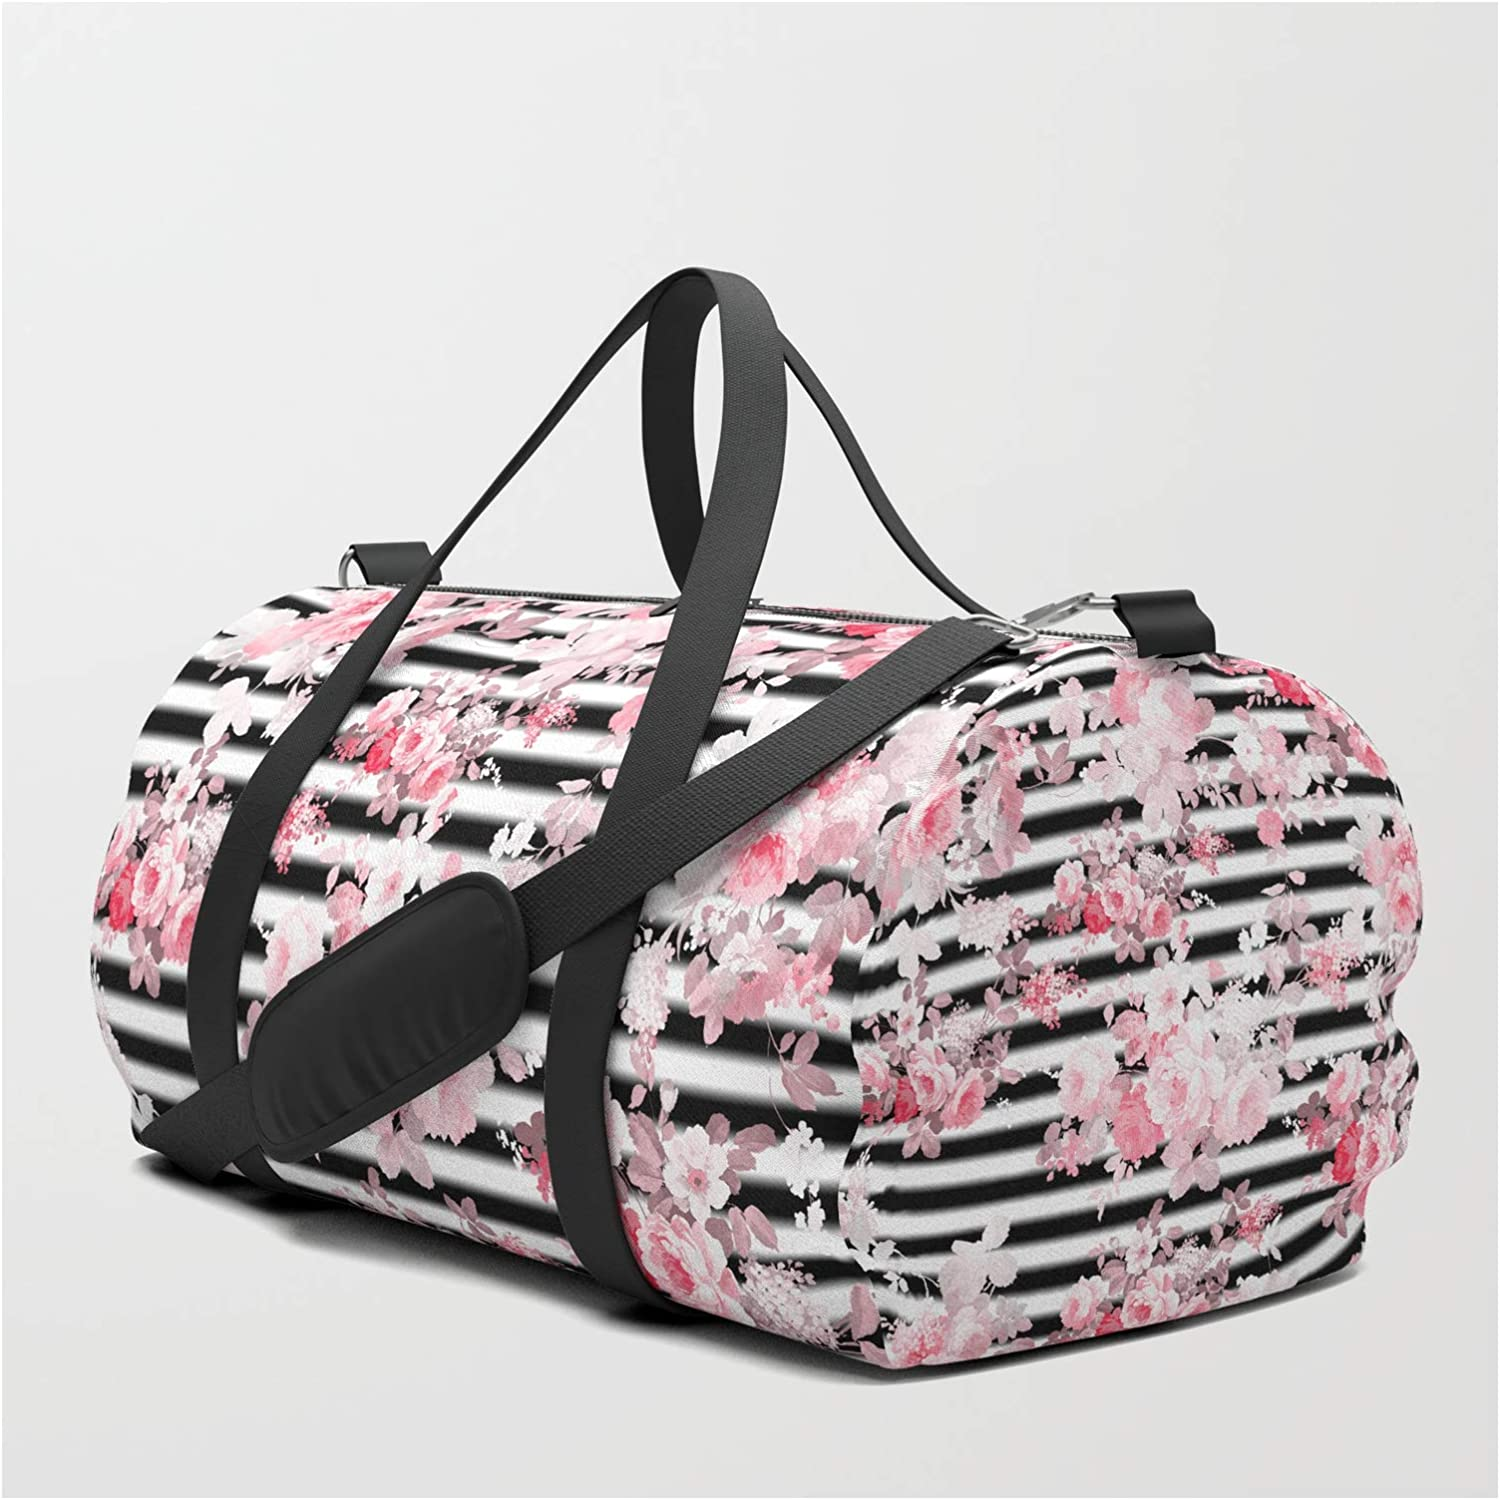 Small 19 x 9. Vintage Blush Pink Floral Black White Stripes by Pink Water on Travel//Duffle Bag